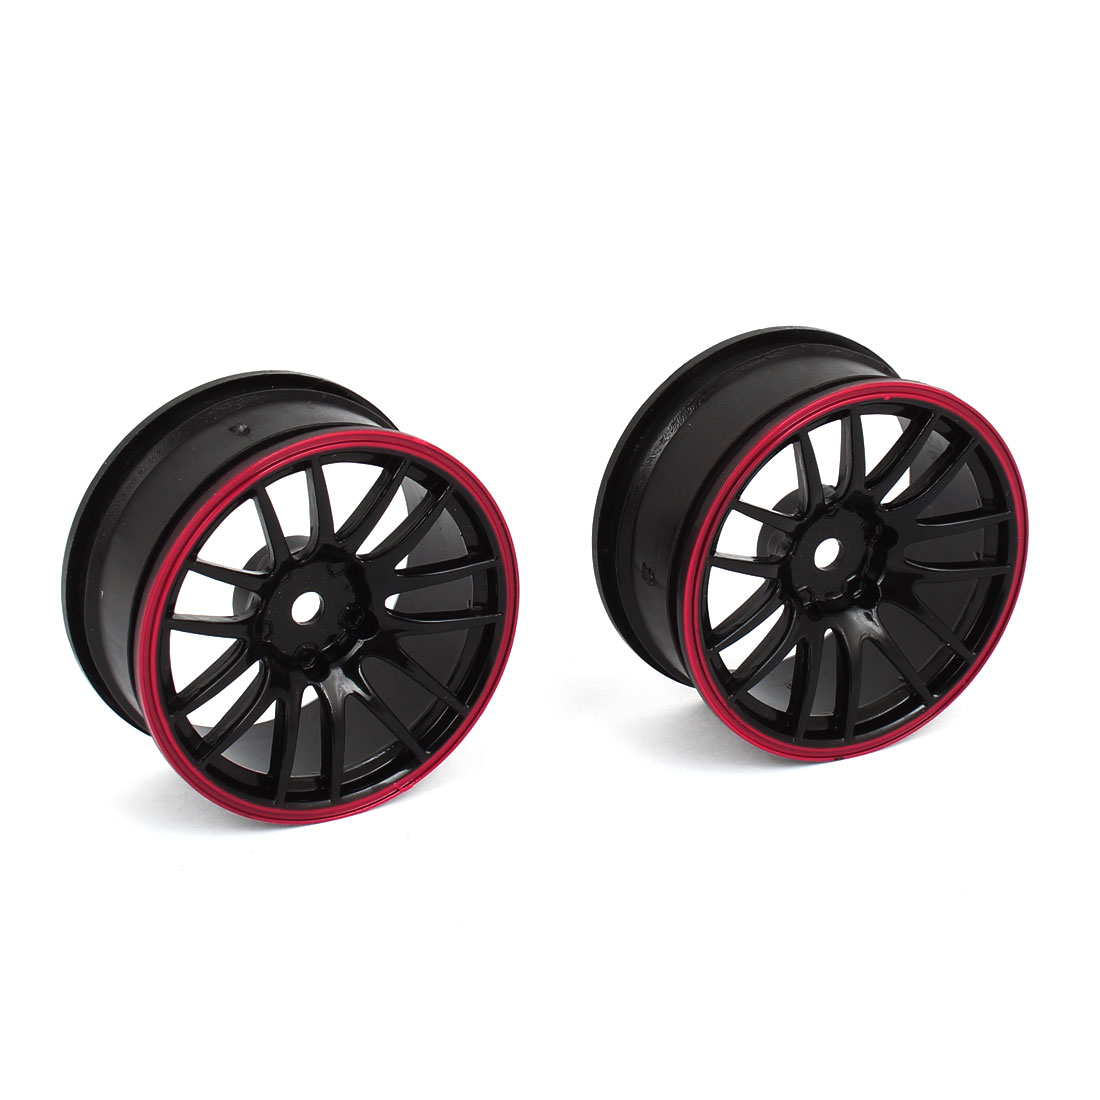 2 Pcs Racing 1/10 Plastic Mesh Drift Wheel Rim Black Red